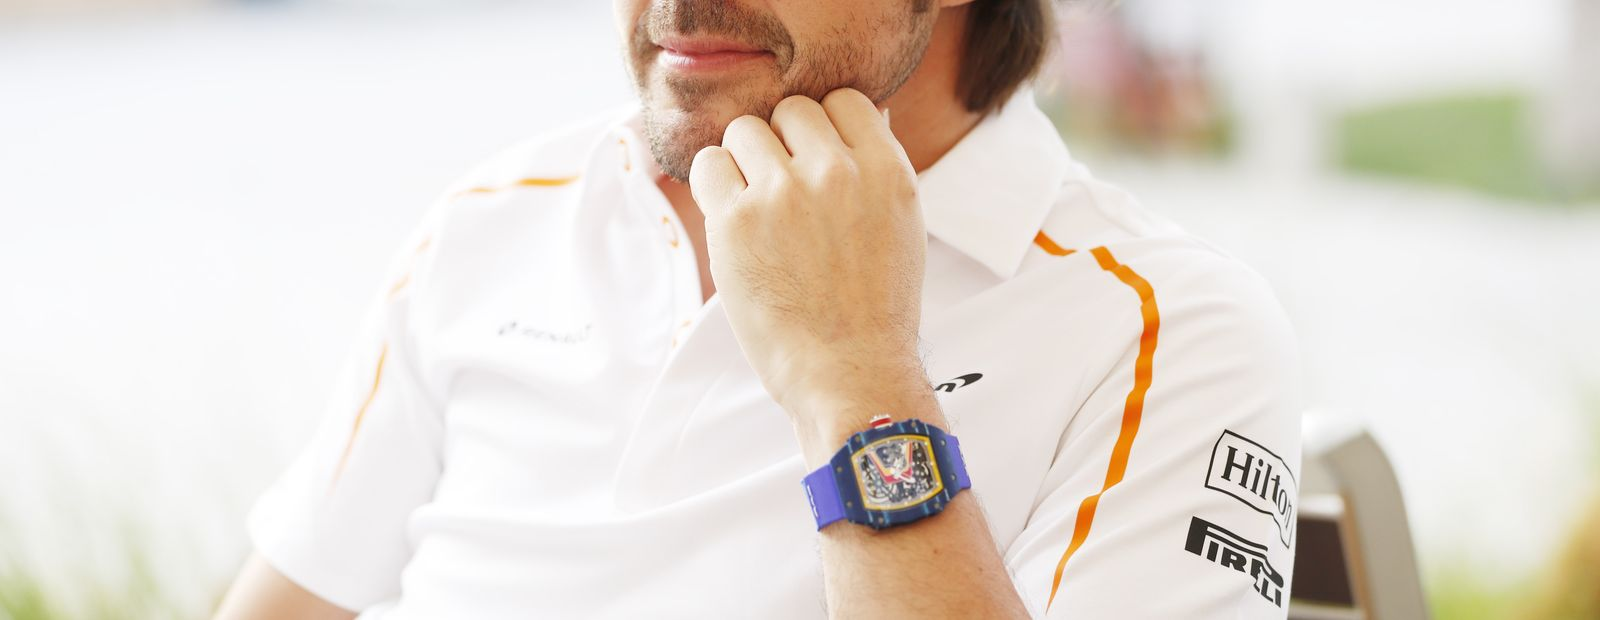 Introducing the RM 67-02 Automatic Prototype Fernando Alonso